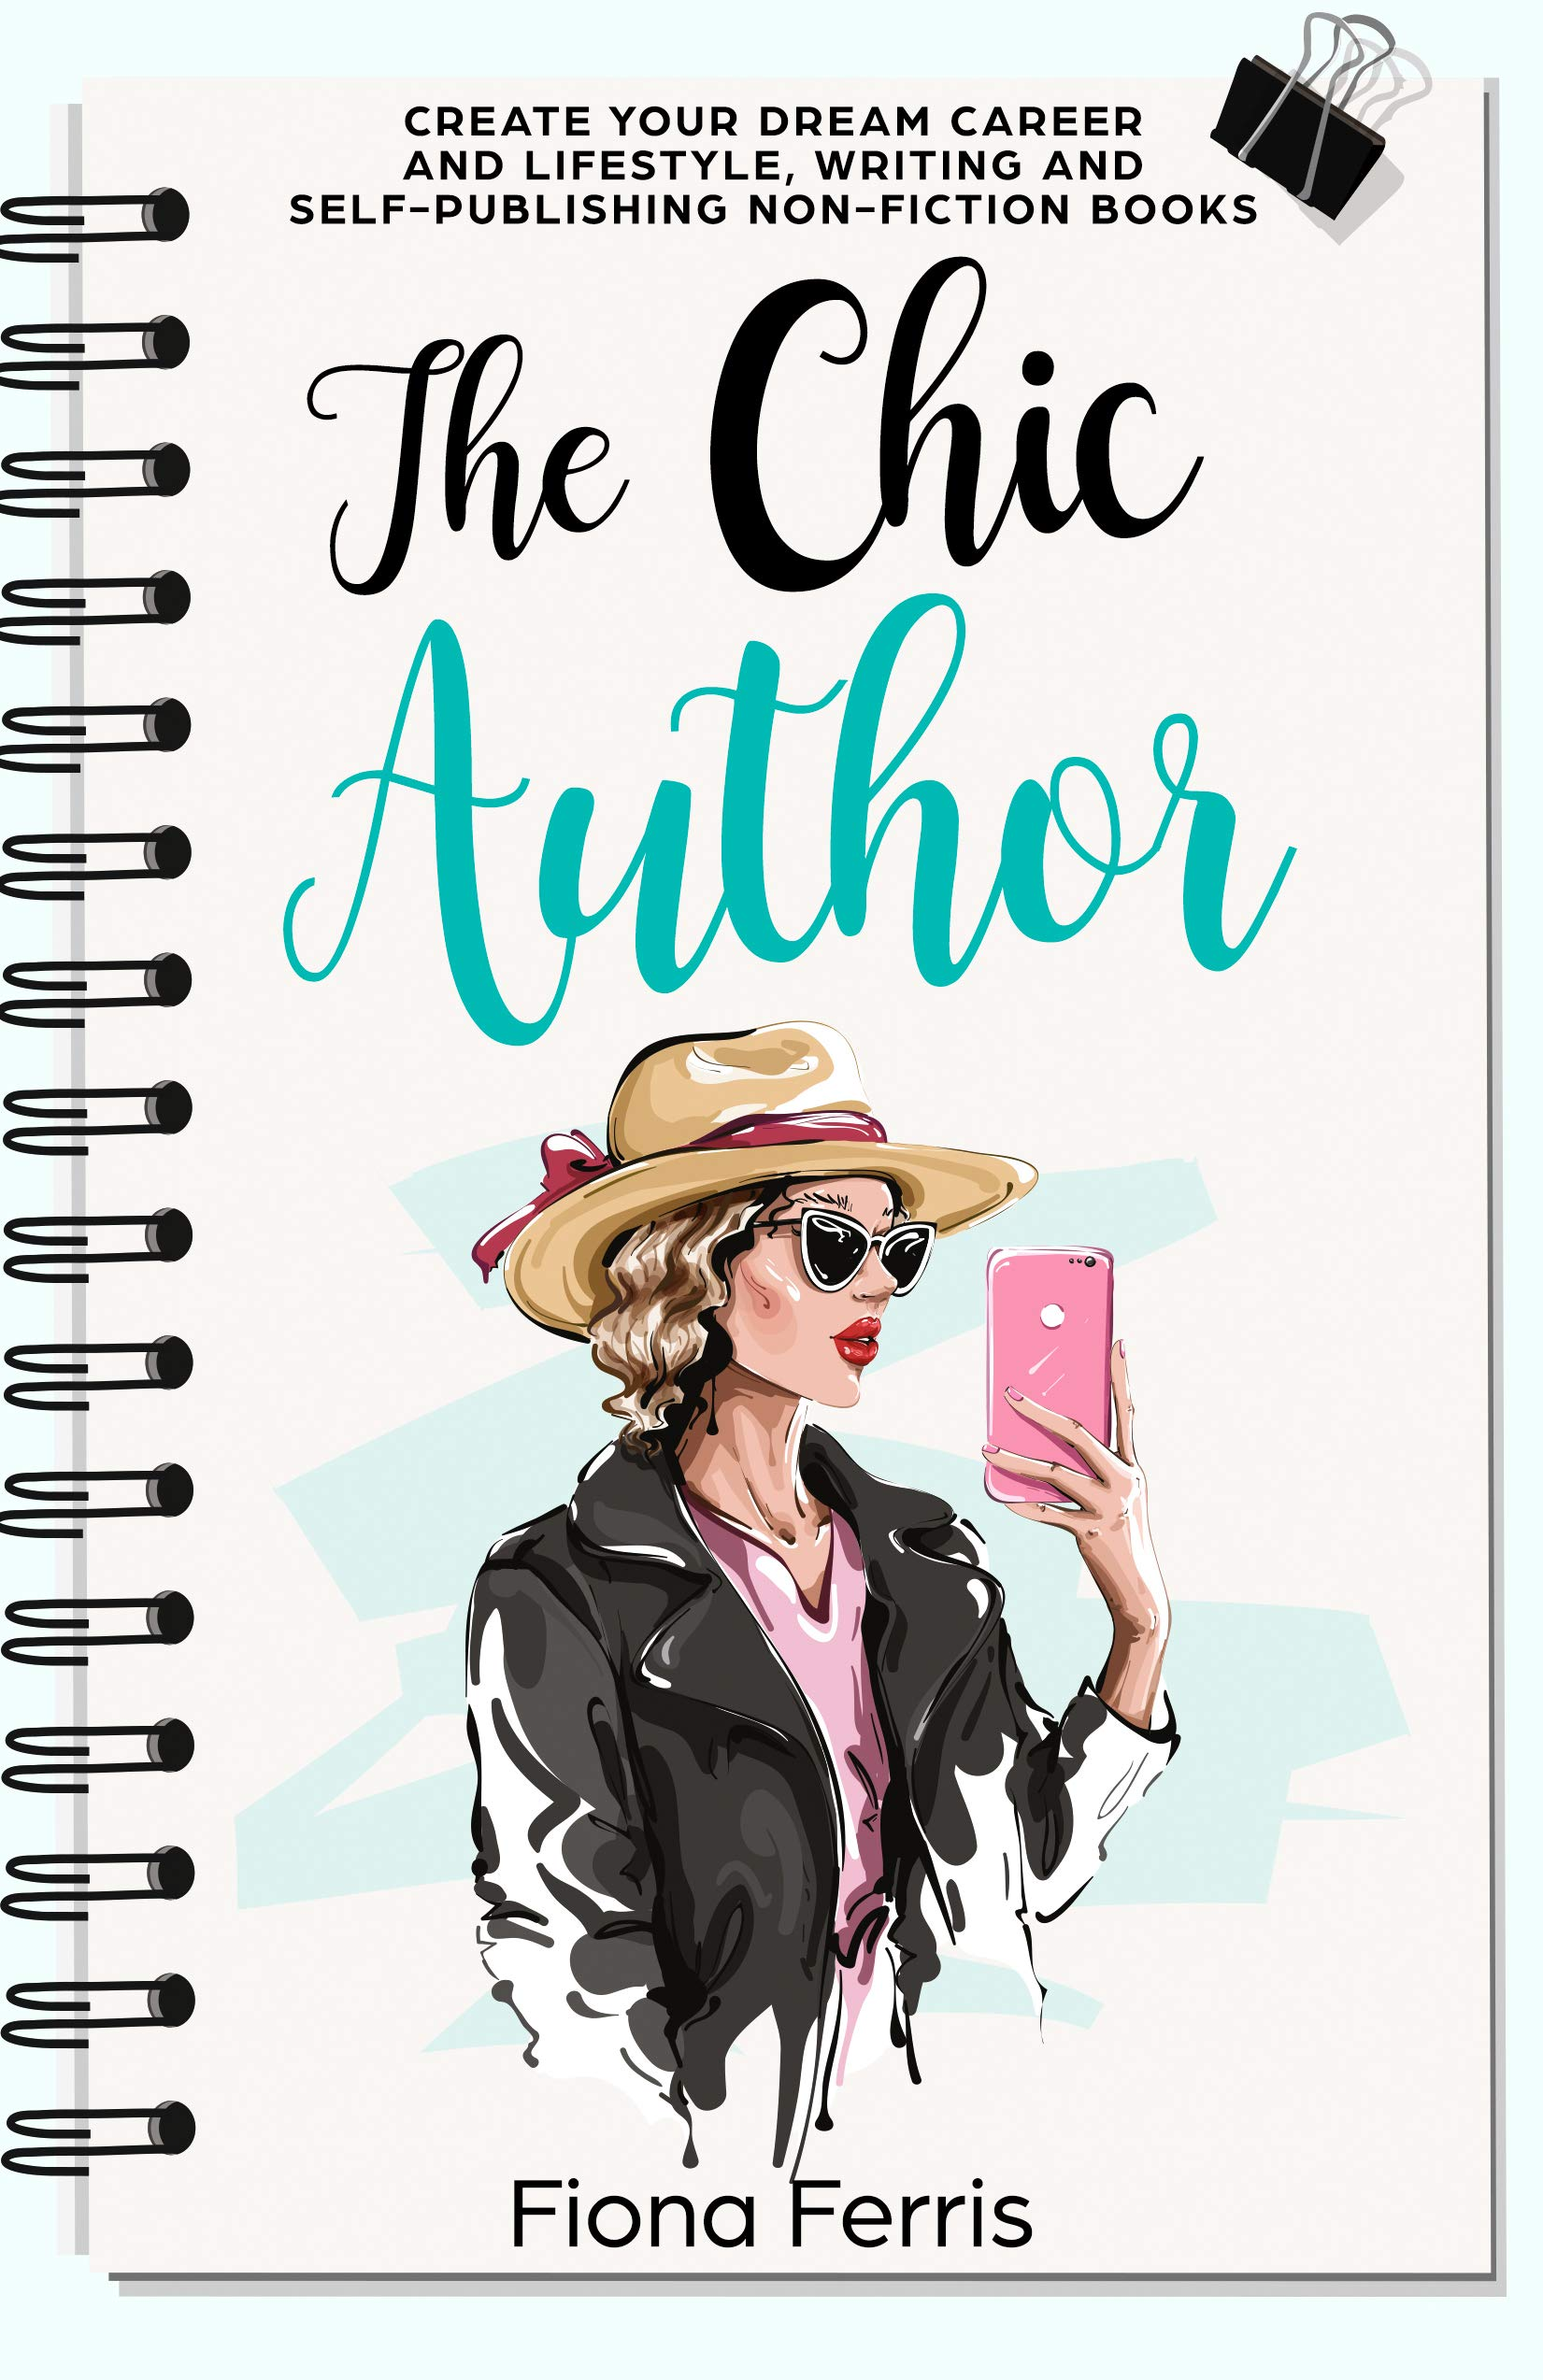 The Chic Author: Create your dream career and lifestyle, writing and self-publishing non-fiction books